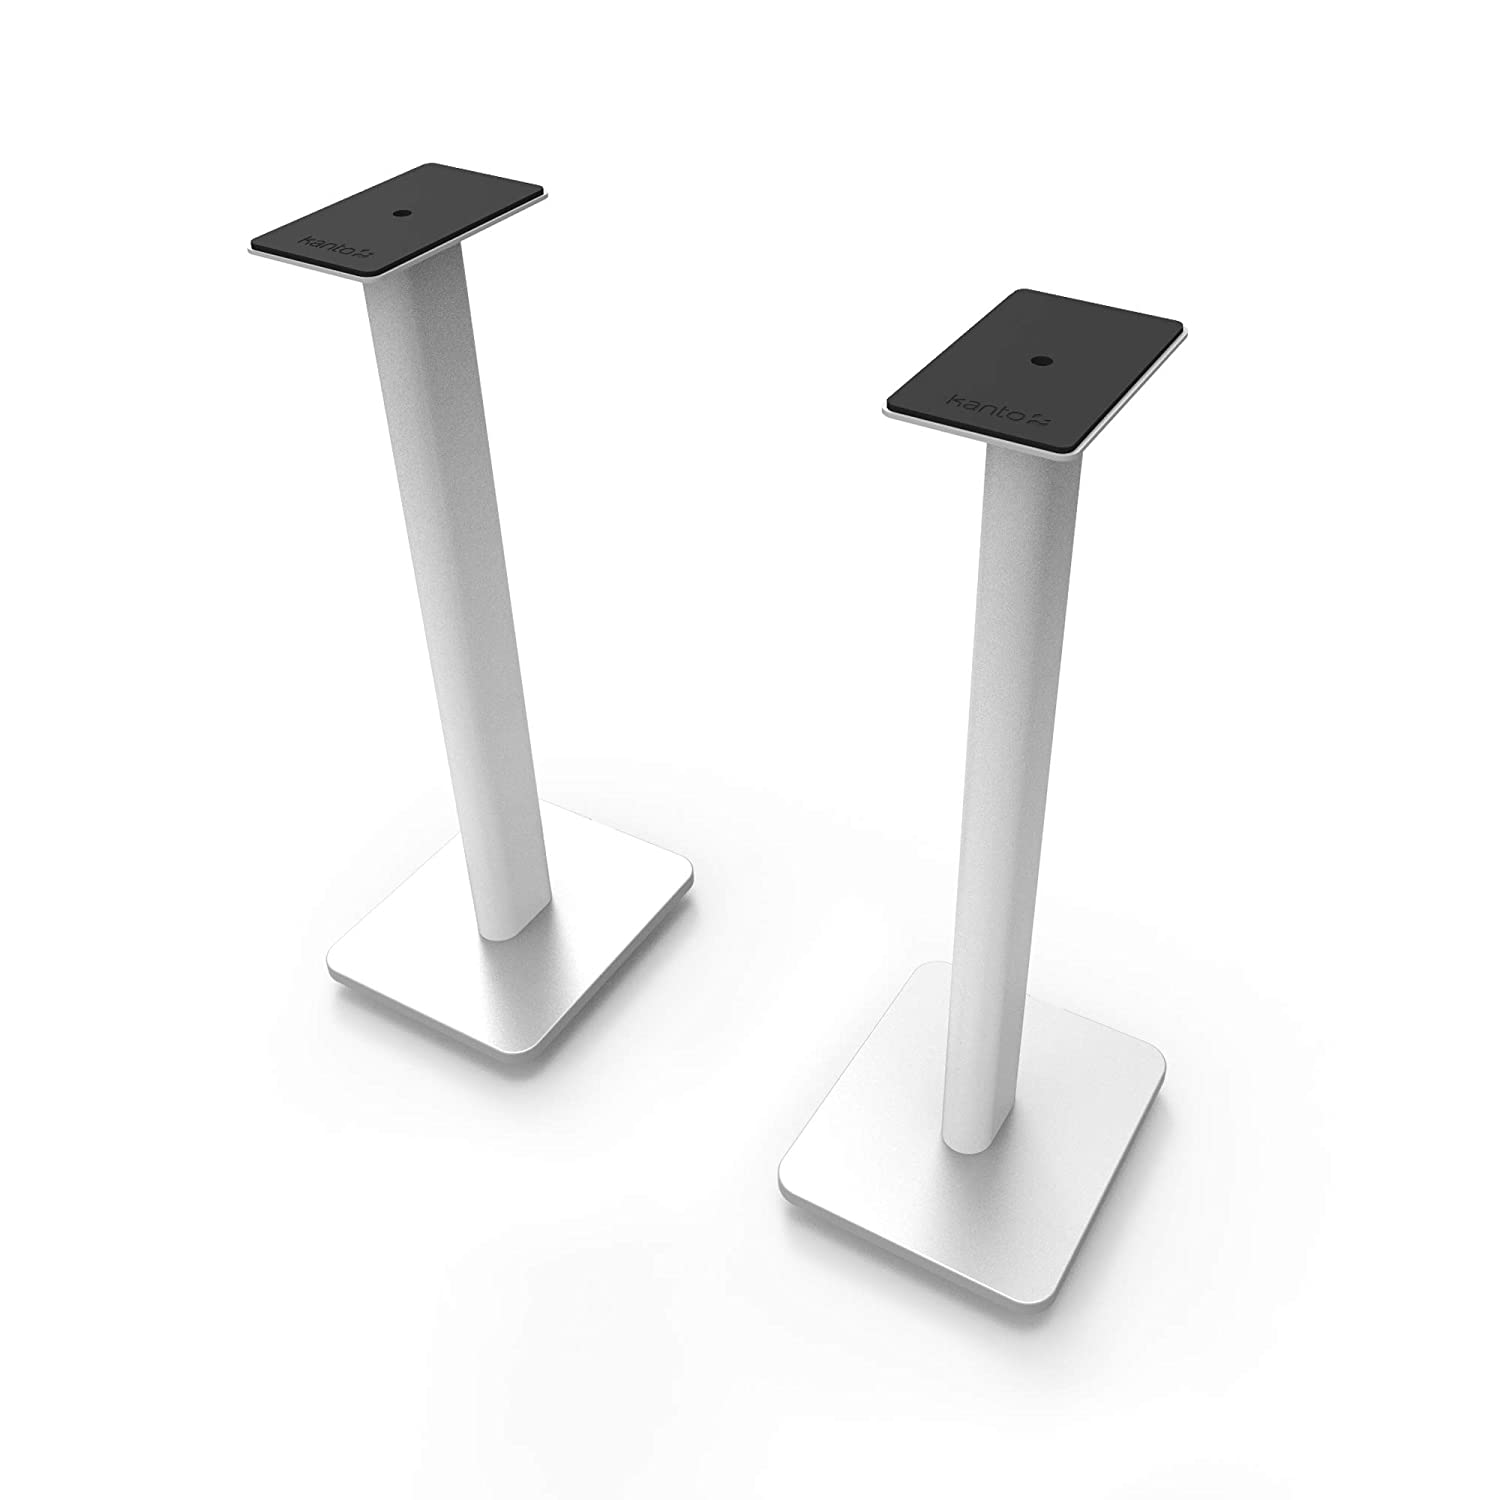 Earthquake Sound 2B-ST35M Heavy Duty Speaker Stands with Carry Bag Pair max Weight of 132 lbs per Stand